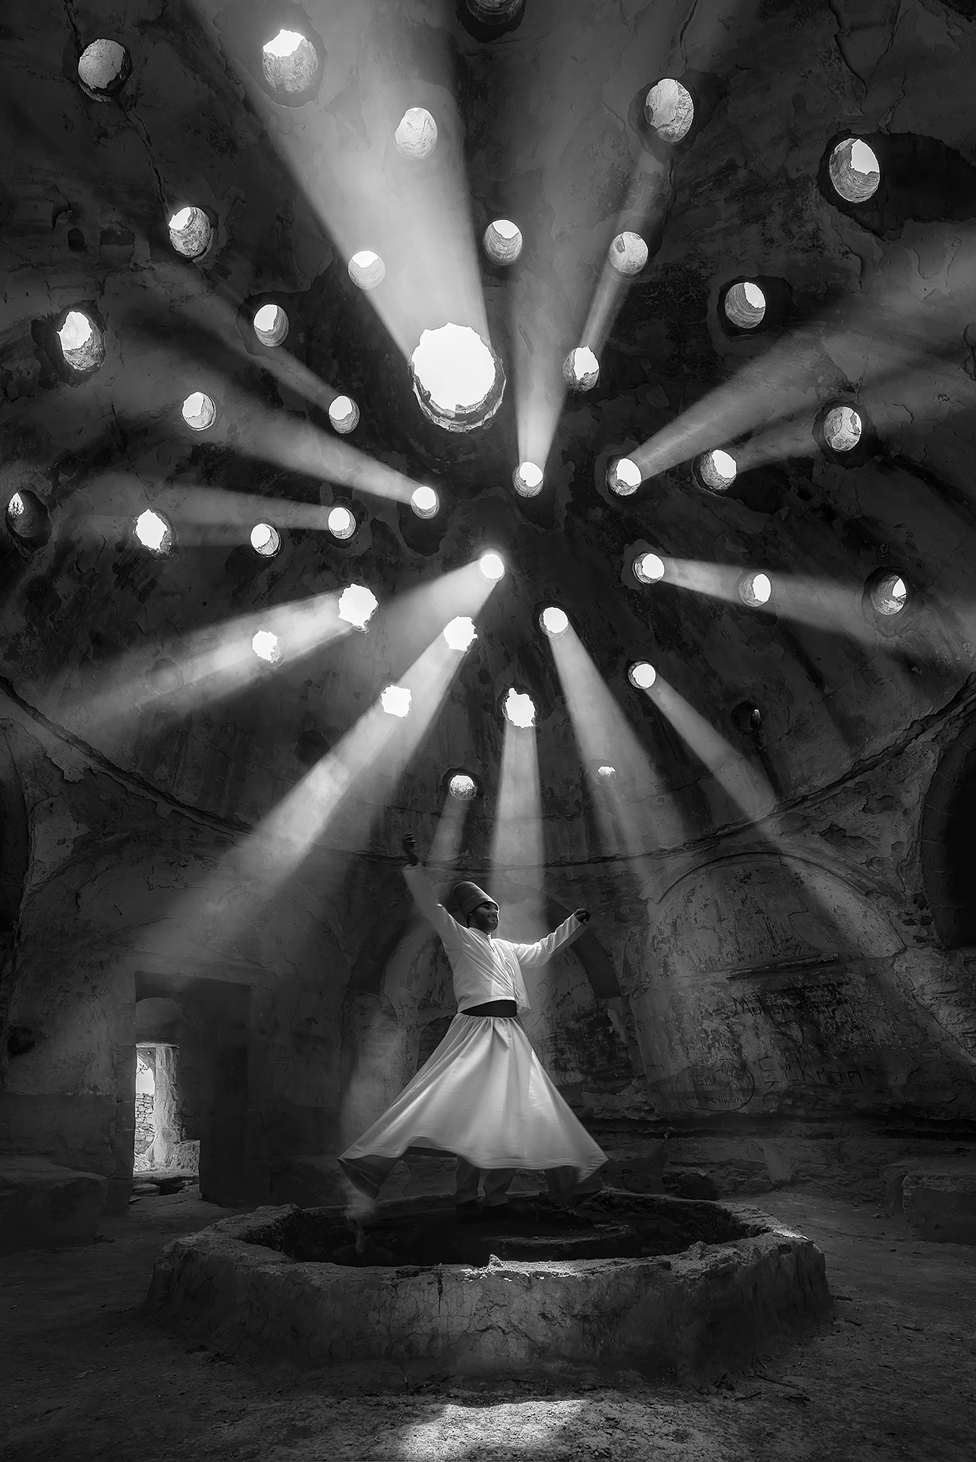 A whirling dervish raises his arms